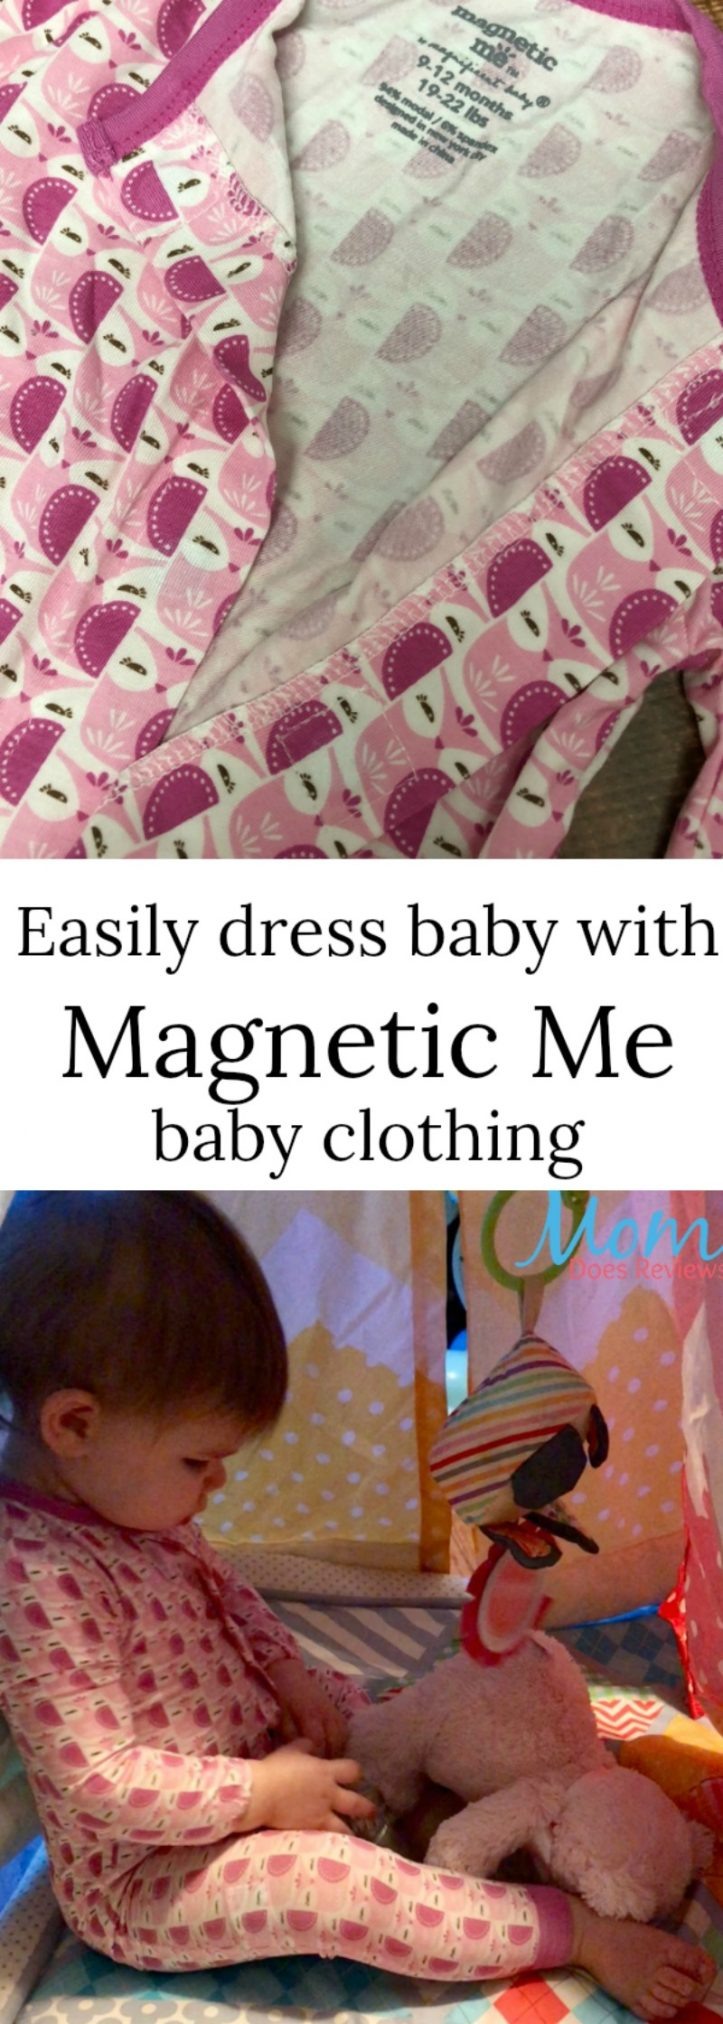 Magnetic Me clothing for baby